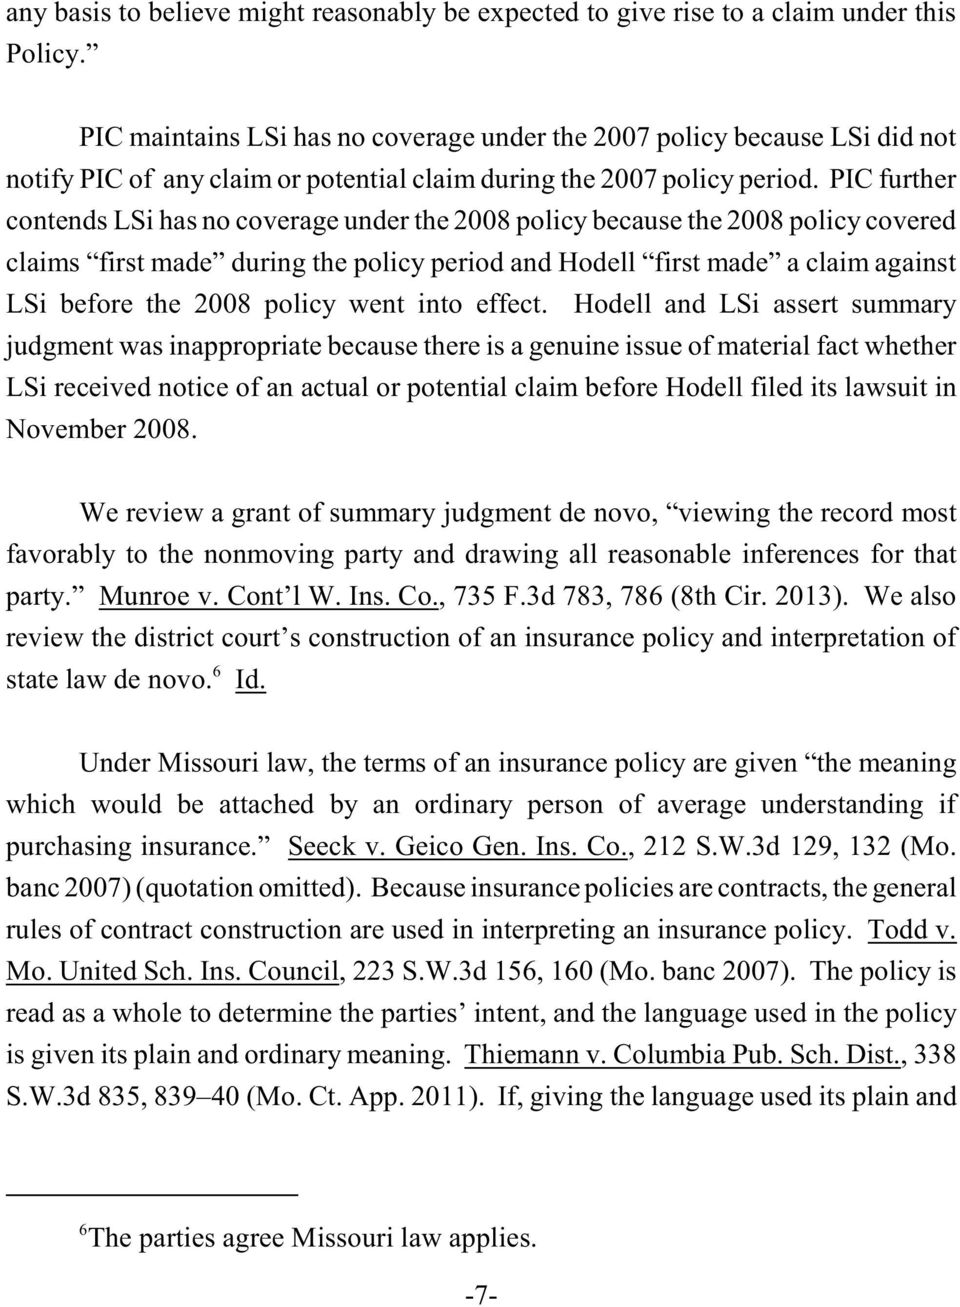 PIC further contends LSi has no coverage under the 2008 policy because the 2008 policy covered claims first made during the policy period and Hodell first made a claim against LSi before the 2008